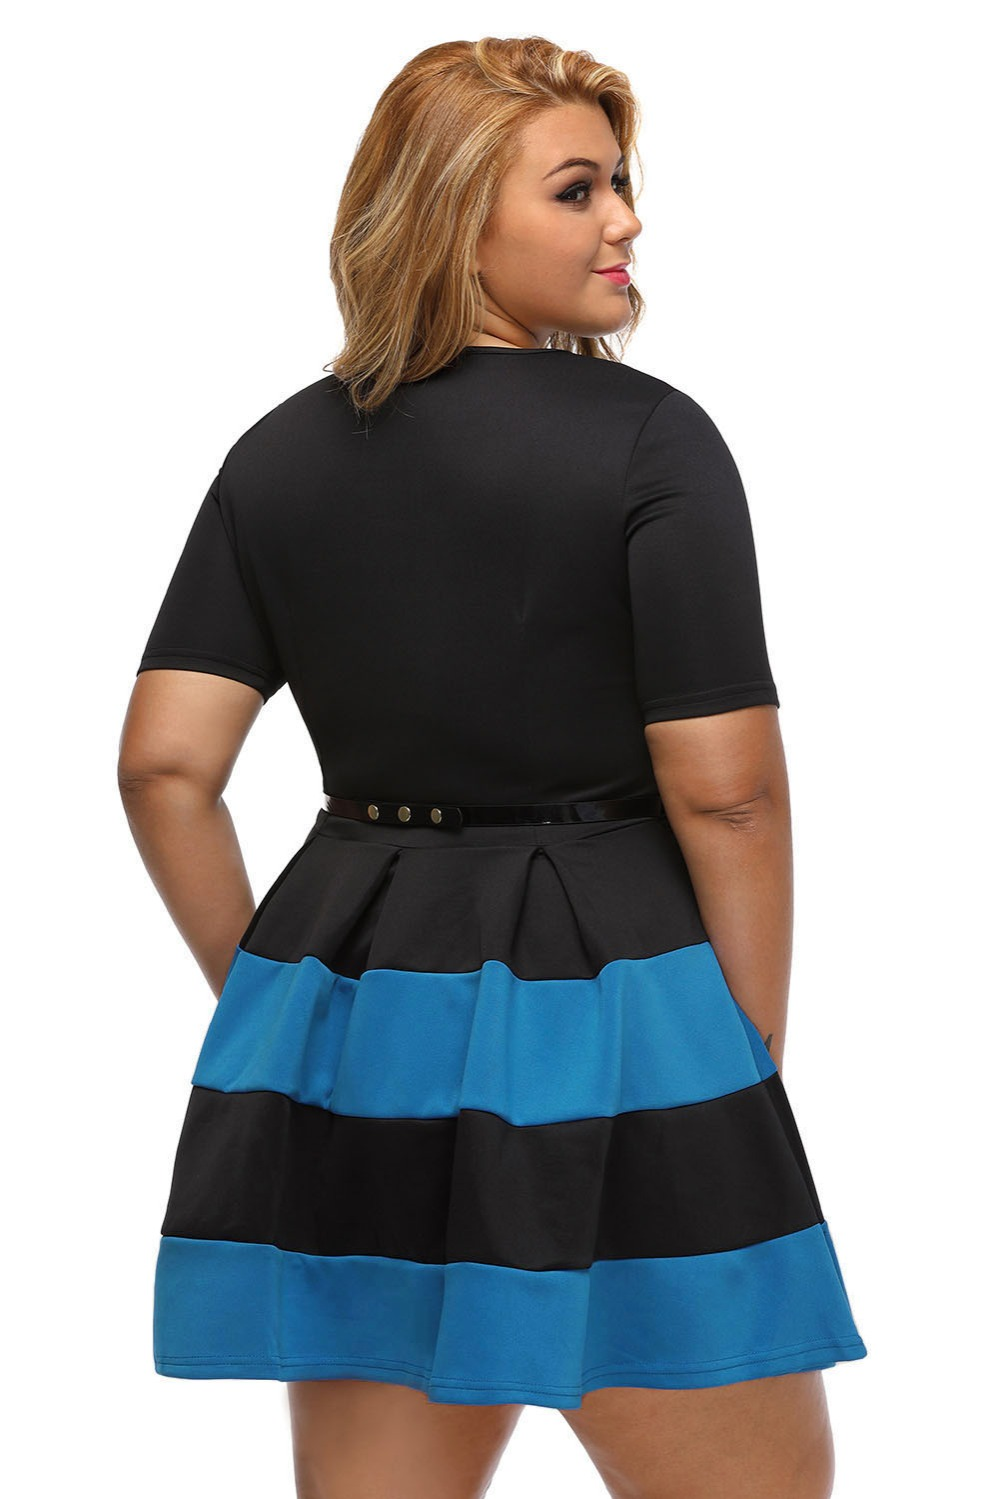 7662e0fd09 Big Girl 3XL Office Ladies Dresses Fall Patchwork White Stripes Detail  Belted Plus Size Skater Dress Vestido Work Clothing-in Dresses from Women s  Clothing ...